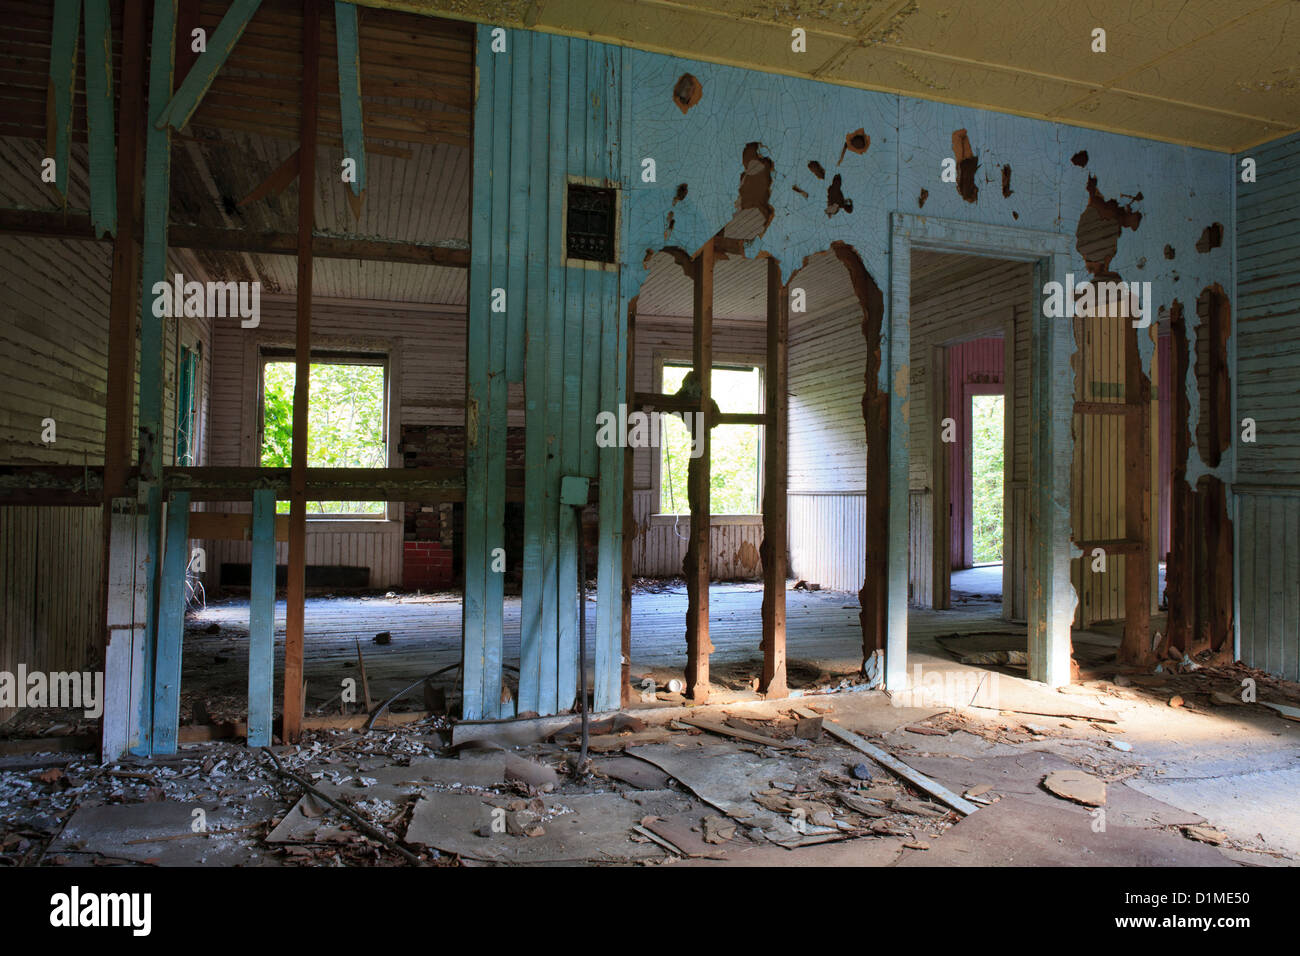 Abandoned home in the mining ghost town of Tahawus - Stock Image